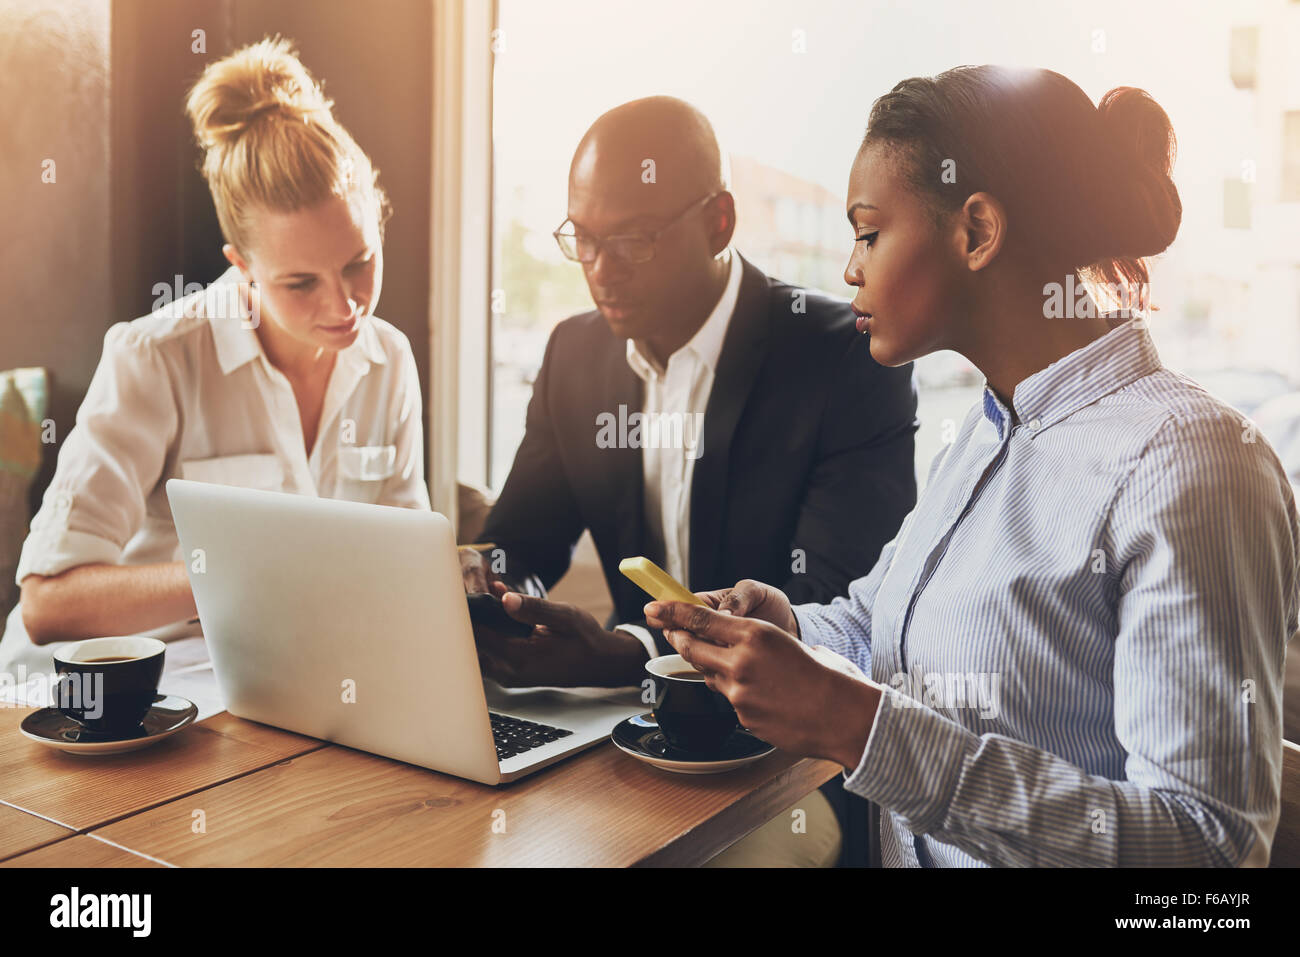 Multi ethnic entrepreneurs planning their work using laptop and cell phone - Stock Image